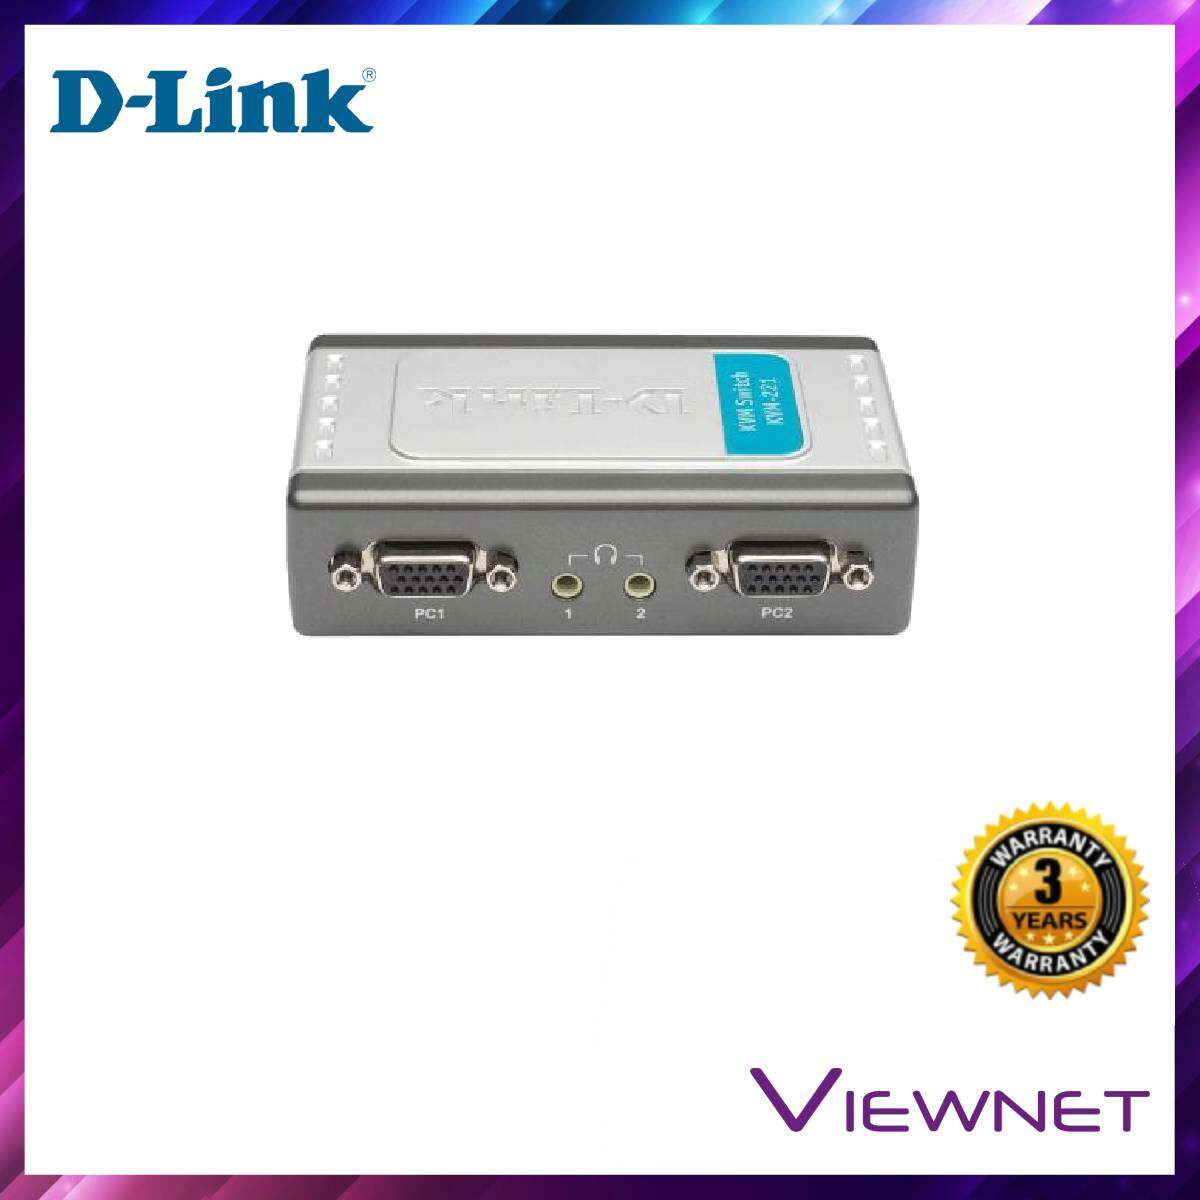 D-Link KVM USB 2-Port With Audio Support Switch (KVM-221)